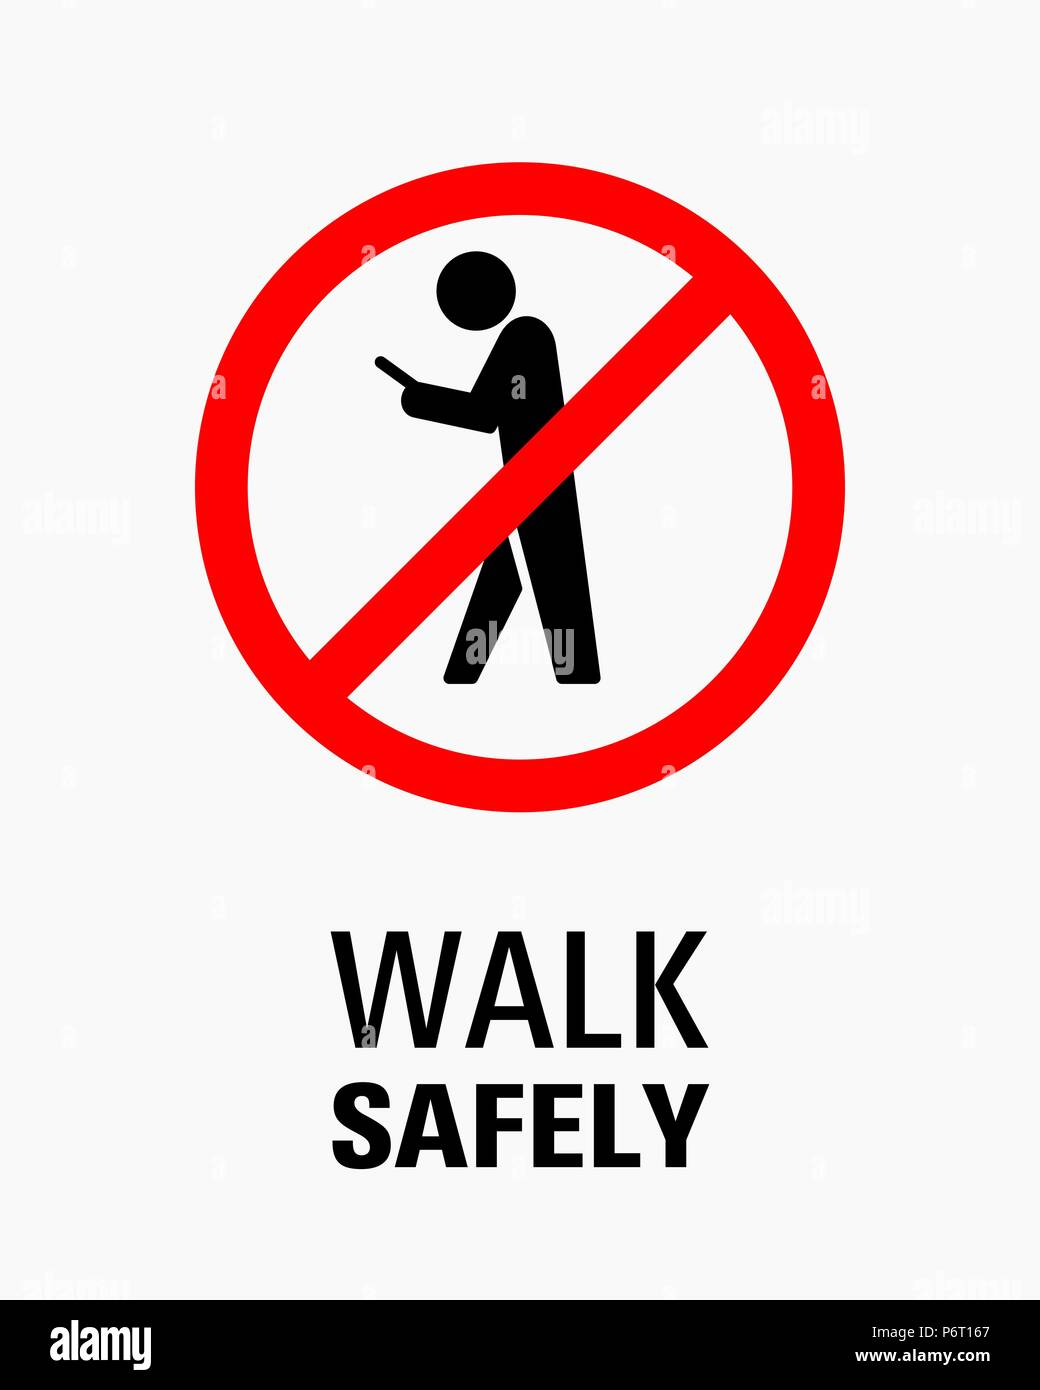 Using smartphone while walking sign vector illustration. - Stock Image